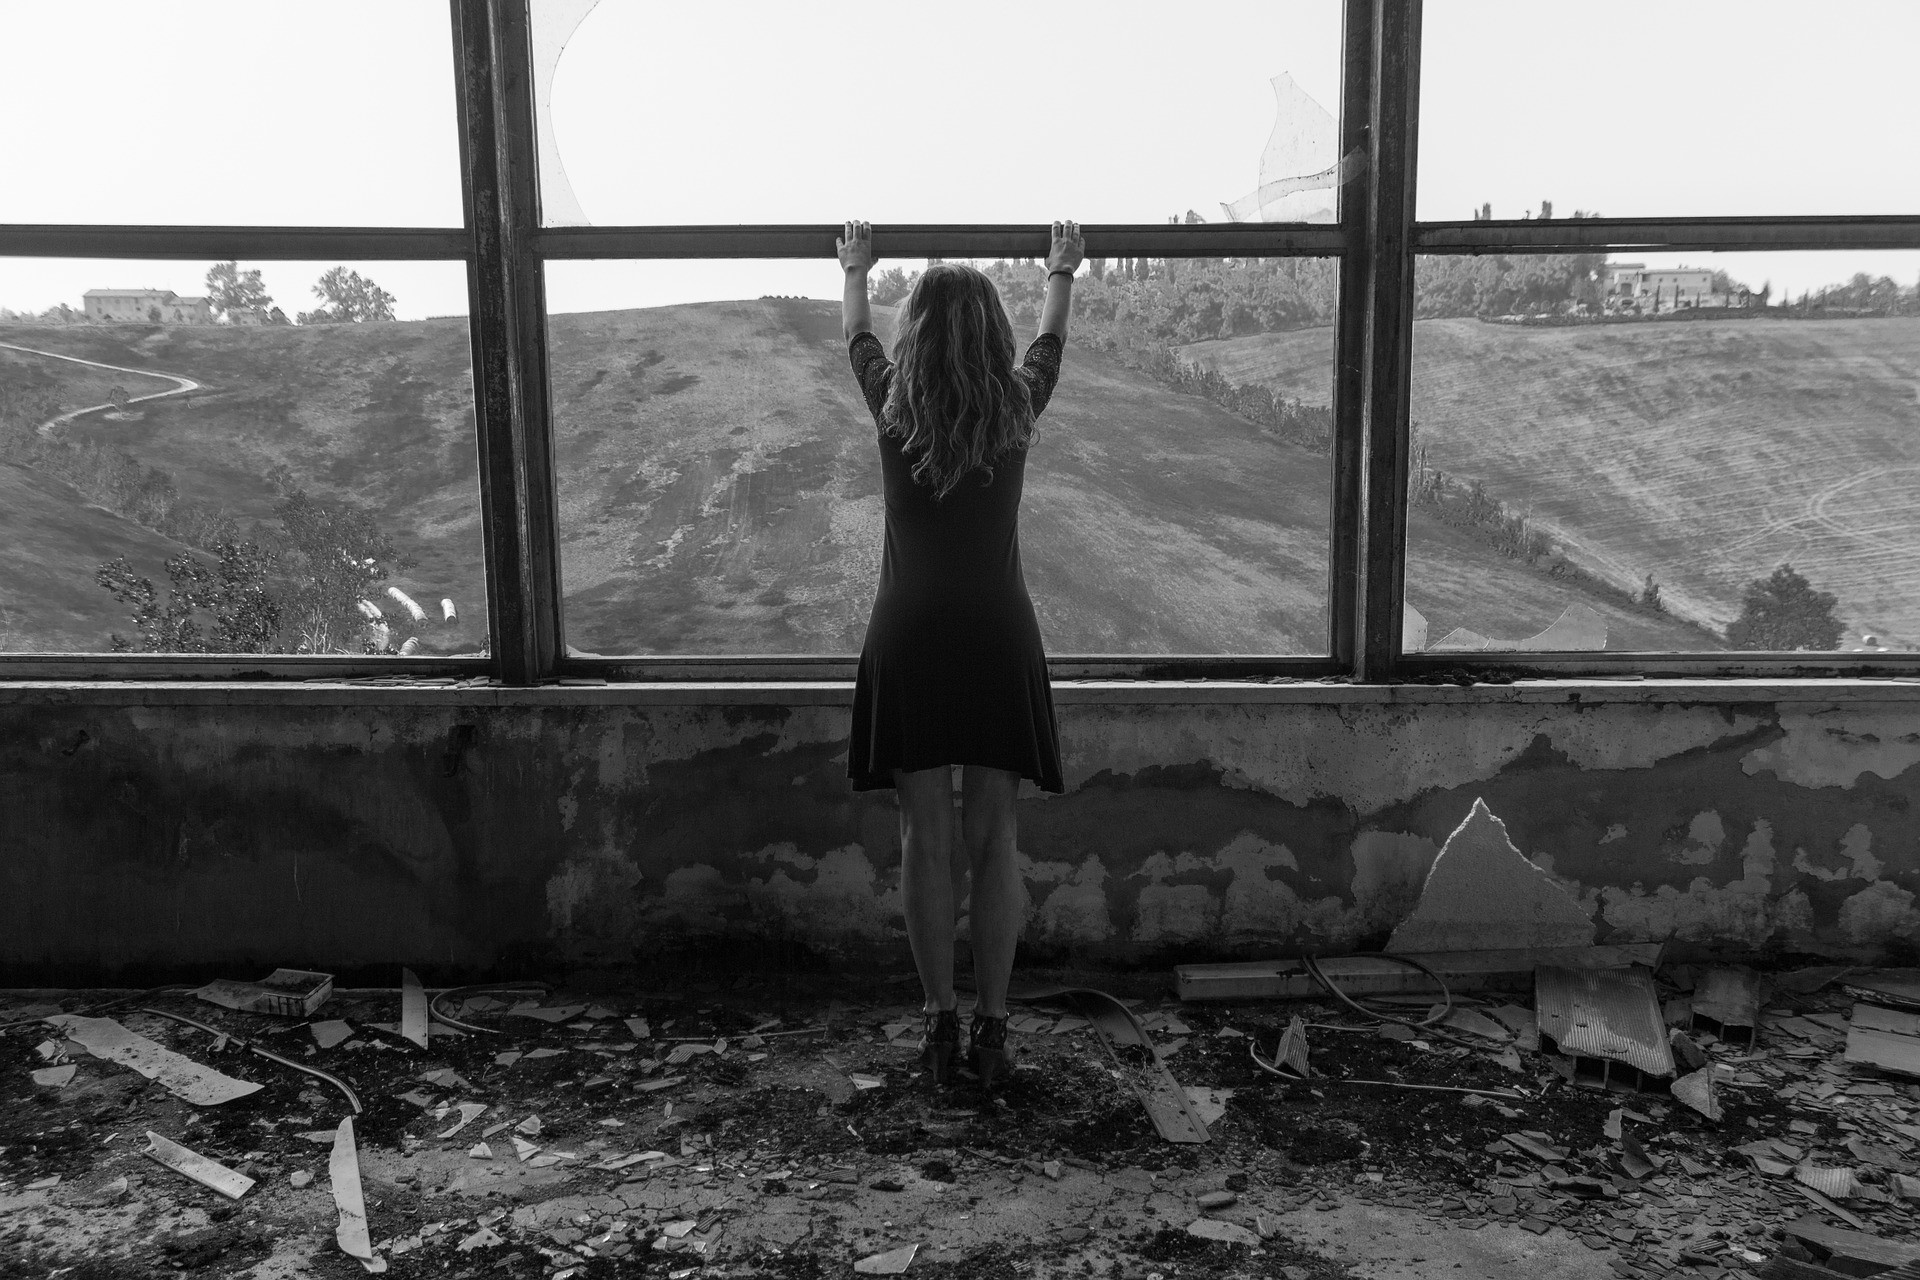 Girl in abandoned building looking at desolate landscape.